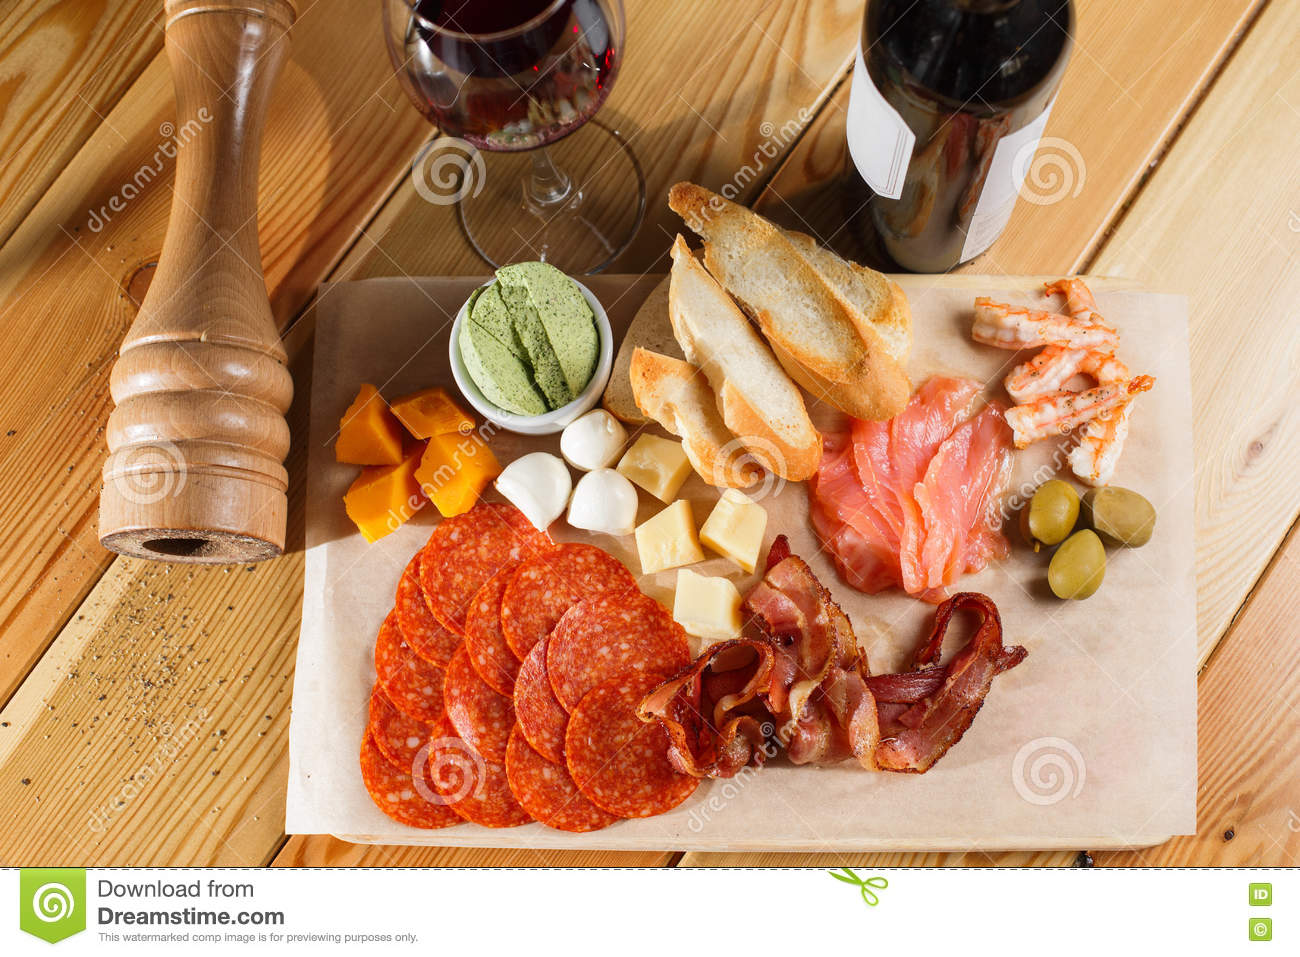 Antipasti Platter On Wooden Surface Bottle And Glass Of Wine Different Snacks Stock Photo Image Of Dish Parma 80905618